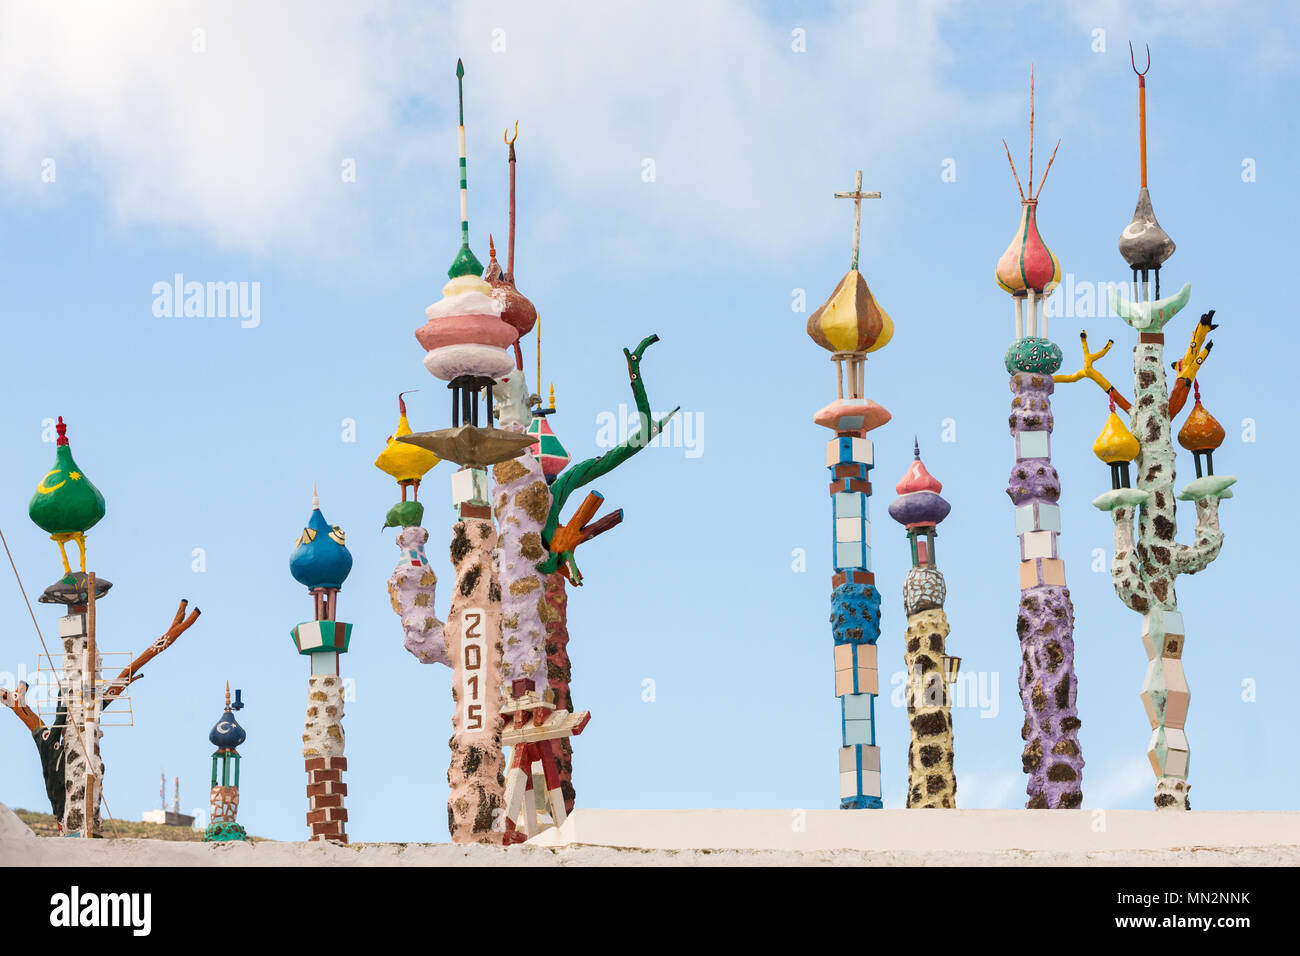 HARIA, LANZAROTE, CANARY ISLANDS, SPAIN: Colorful art on top of a rooftop. - Stock Image